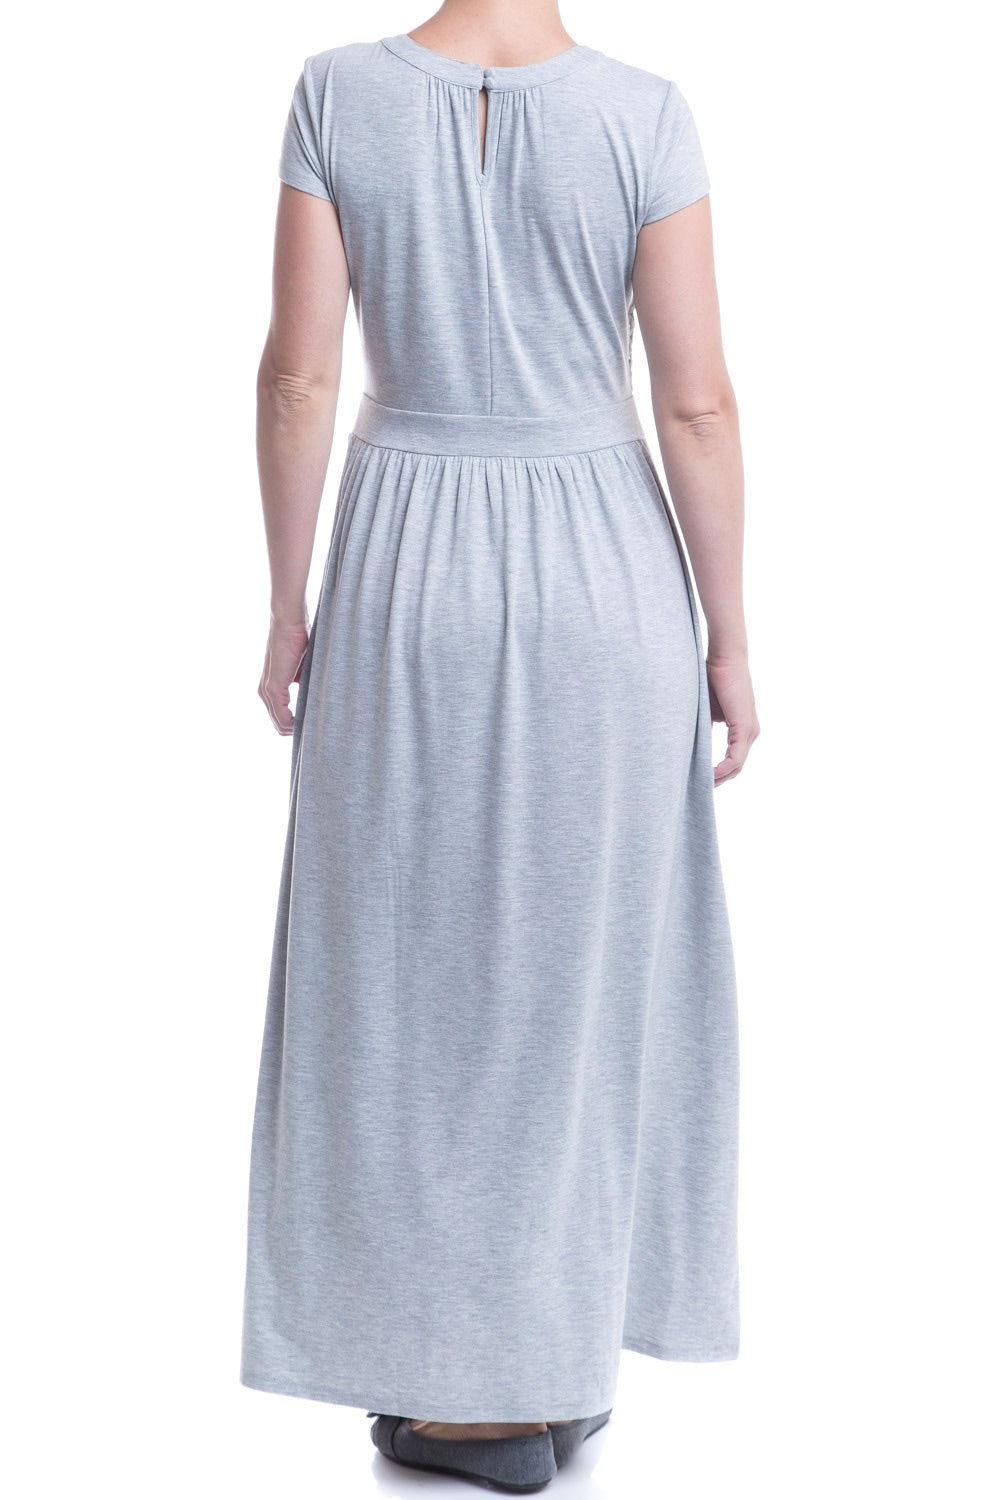 Type 2 Spring Dream Dress In Heather Gray